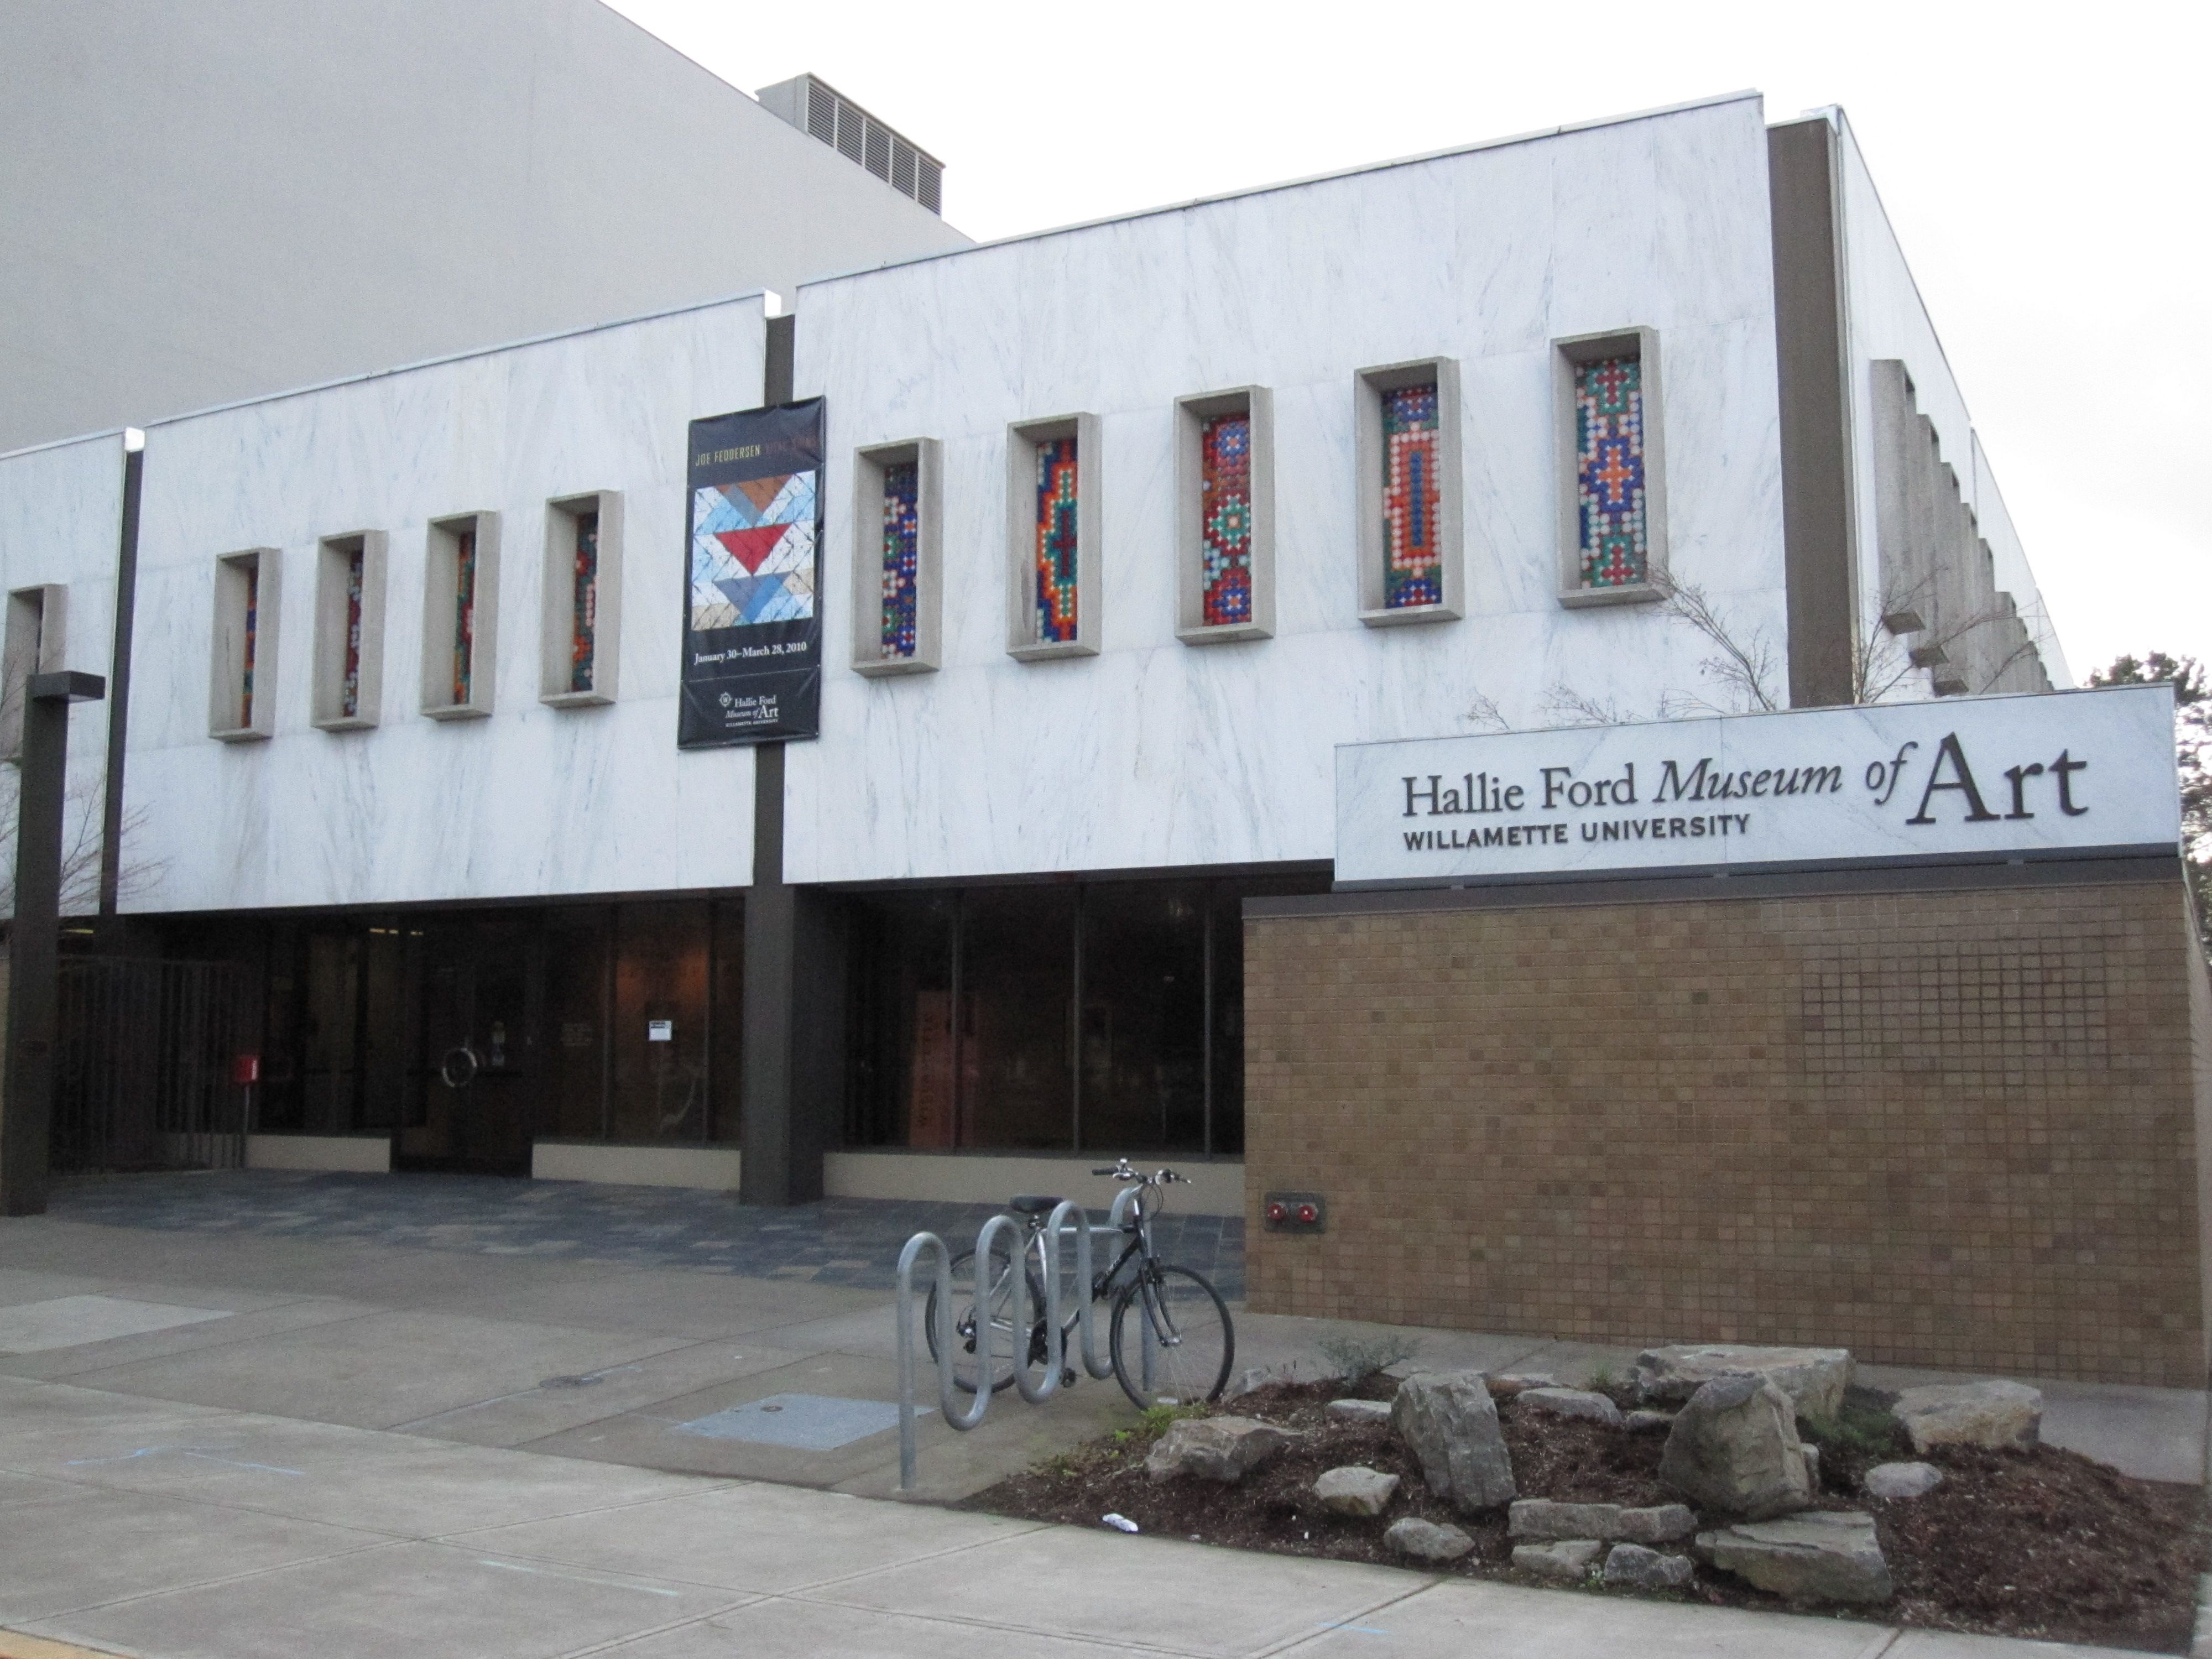 Exterior main entrance of the Hallie Ford Museum of Art